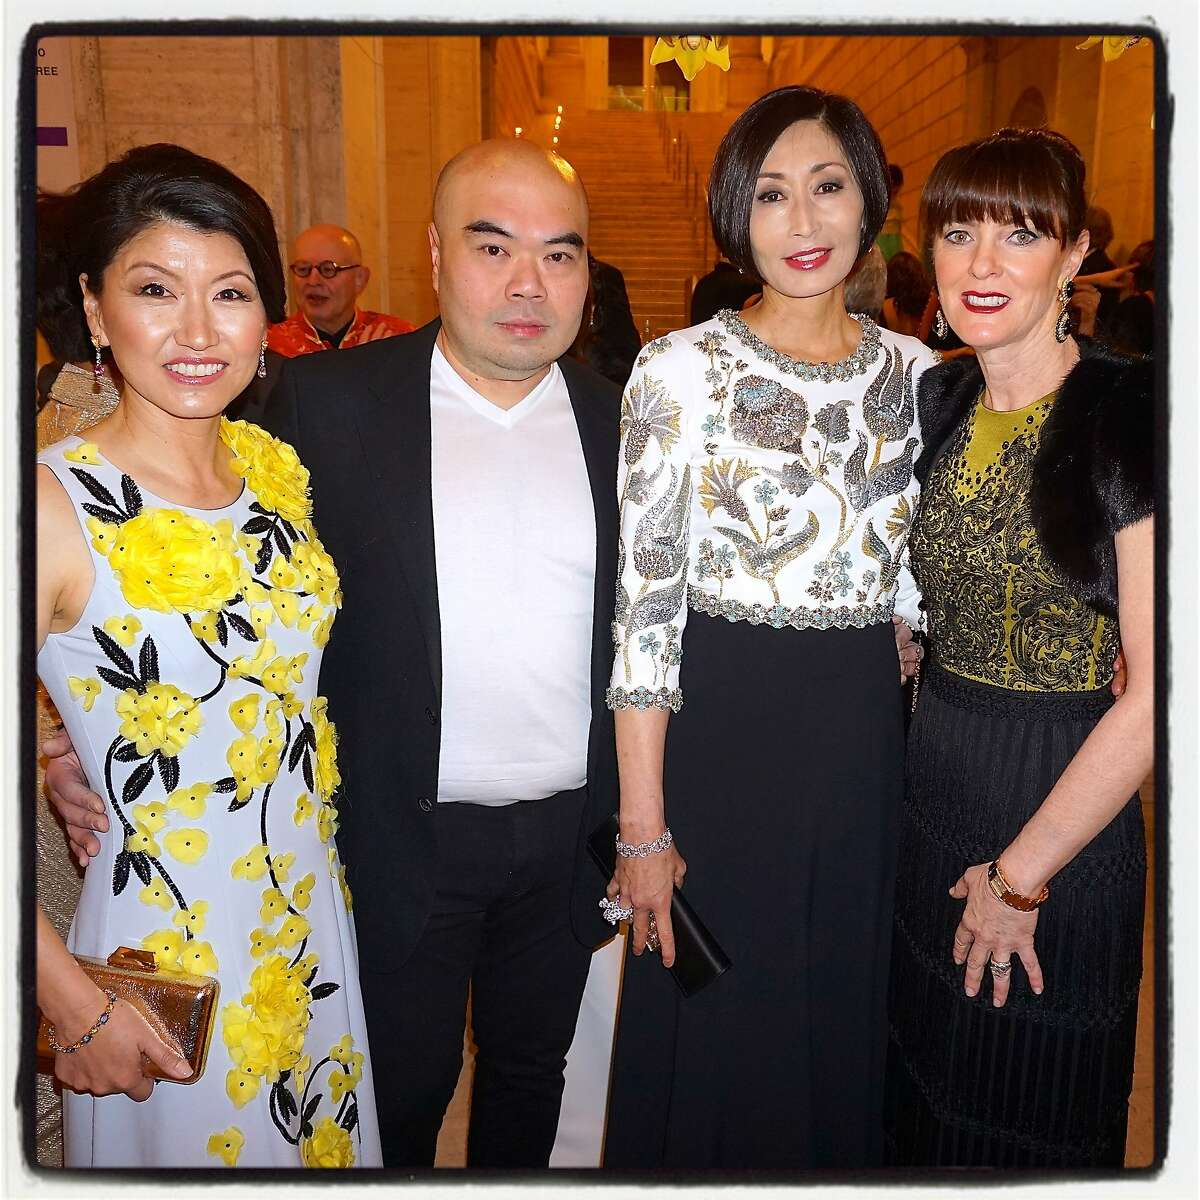 Golden Gala chairwoman Akiko Yamazaki (left), fashion designer Andrew Gn, Yurie Pascarella and Allison Speer (all wearing Gn gowns) at the Asian Art Museum party.